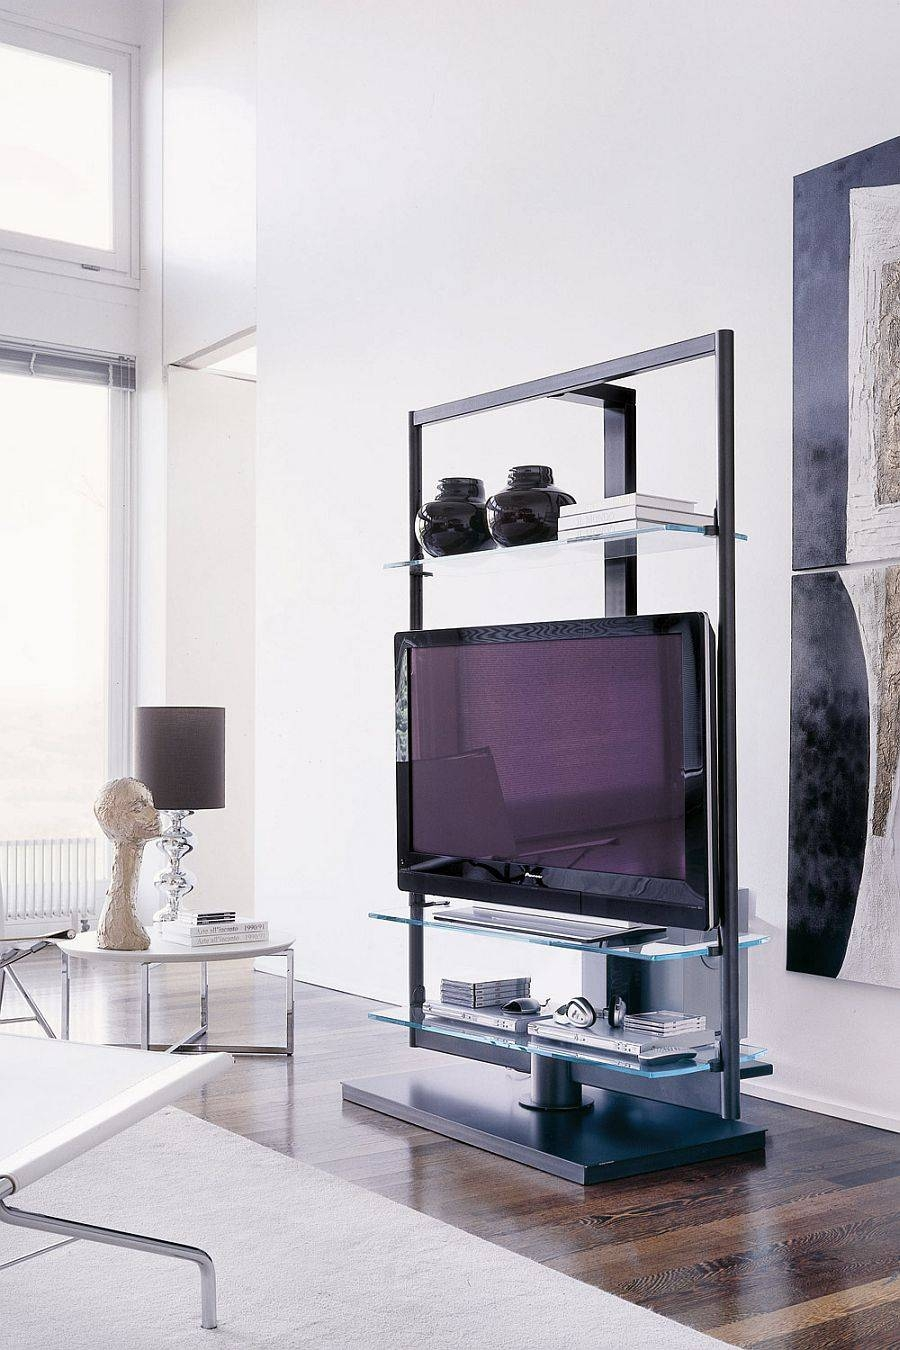 Captivating Tv Stand Small Space 47 On Small Home Remodel Ideas regarding Tv Stands for Small Rooms (Image 8 of 15)